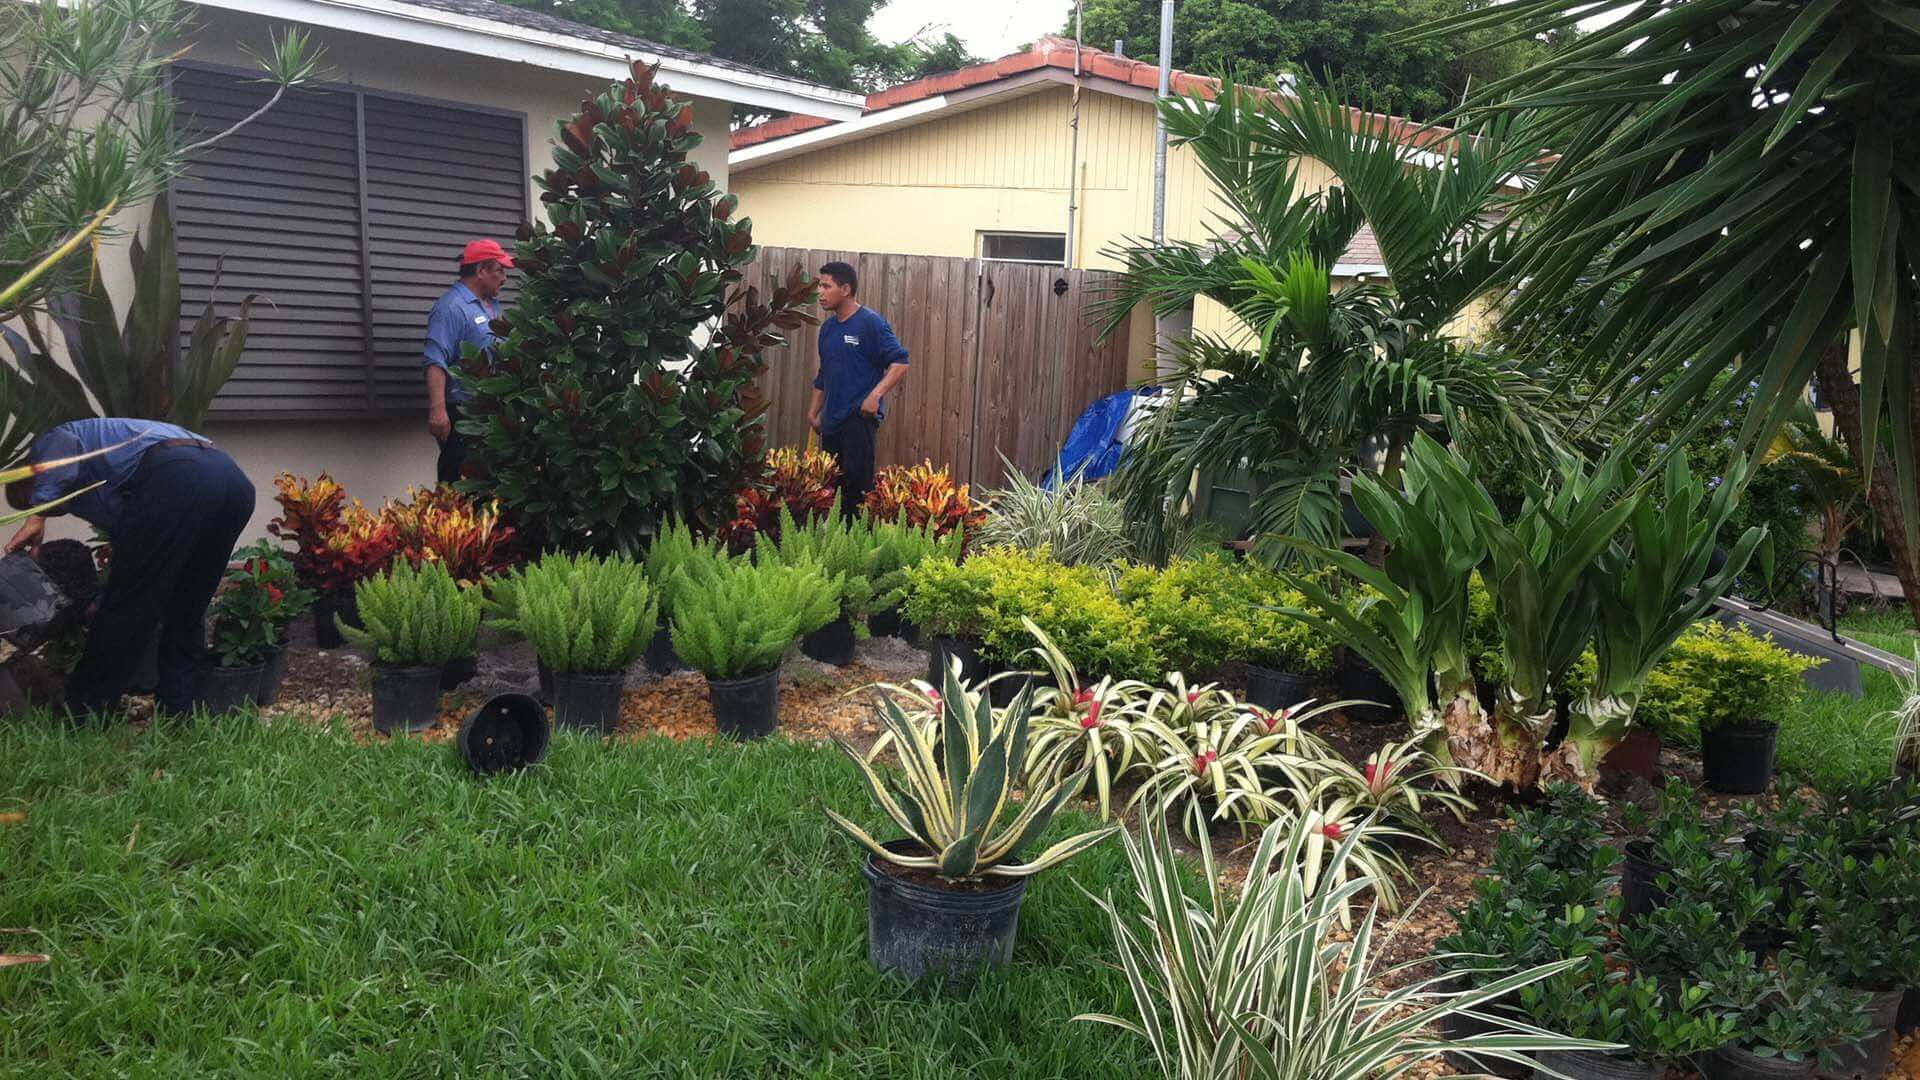 Go2Scape.Inc employees working on a residential home in Parkland, FL